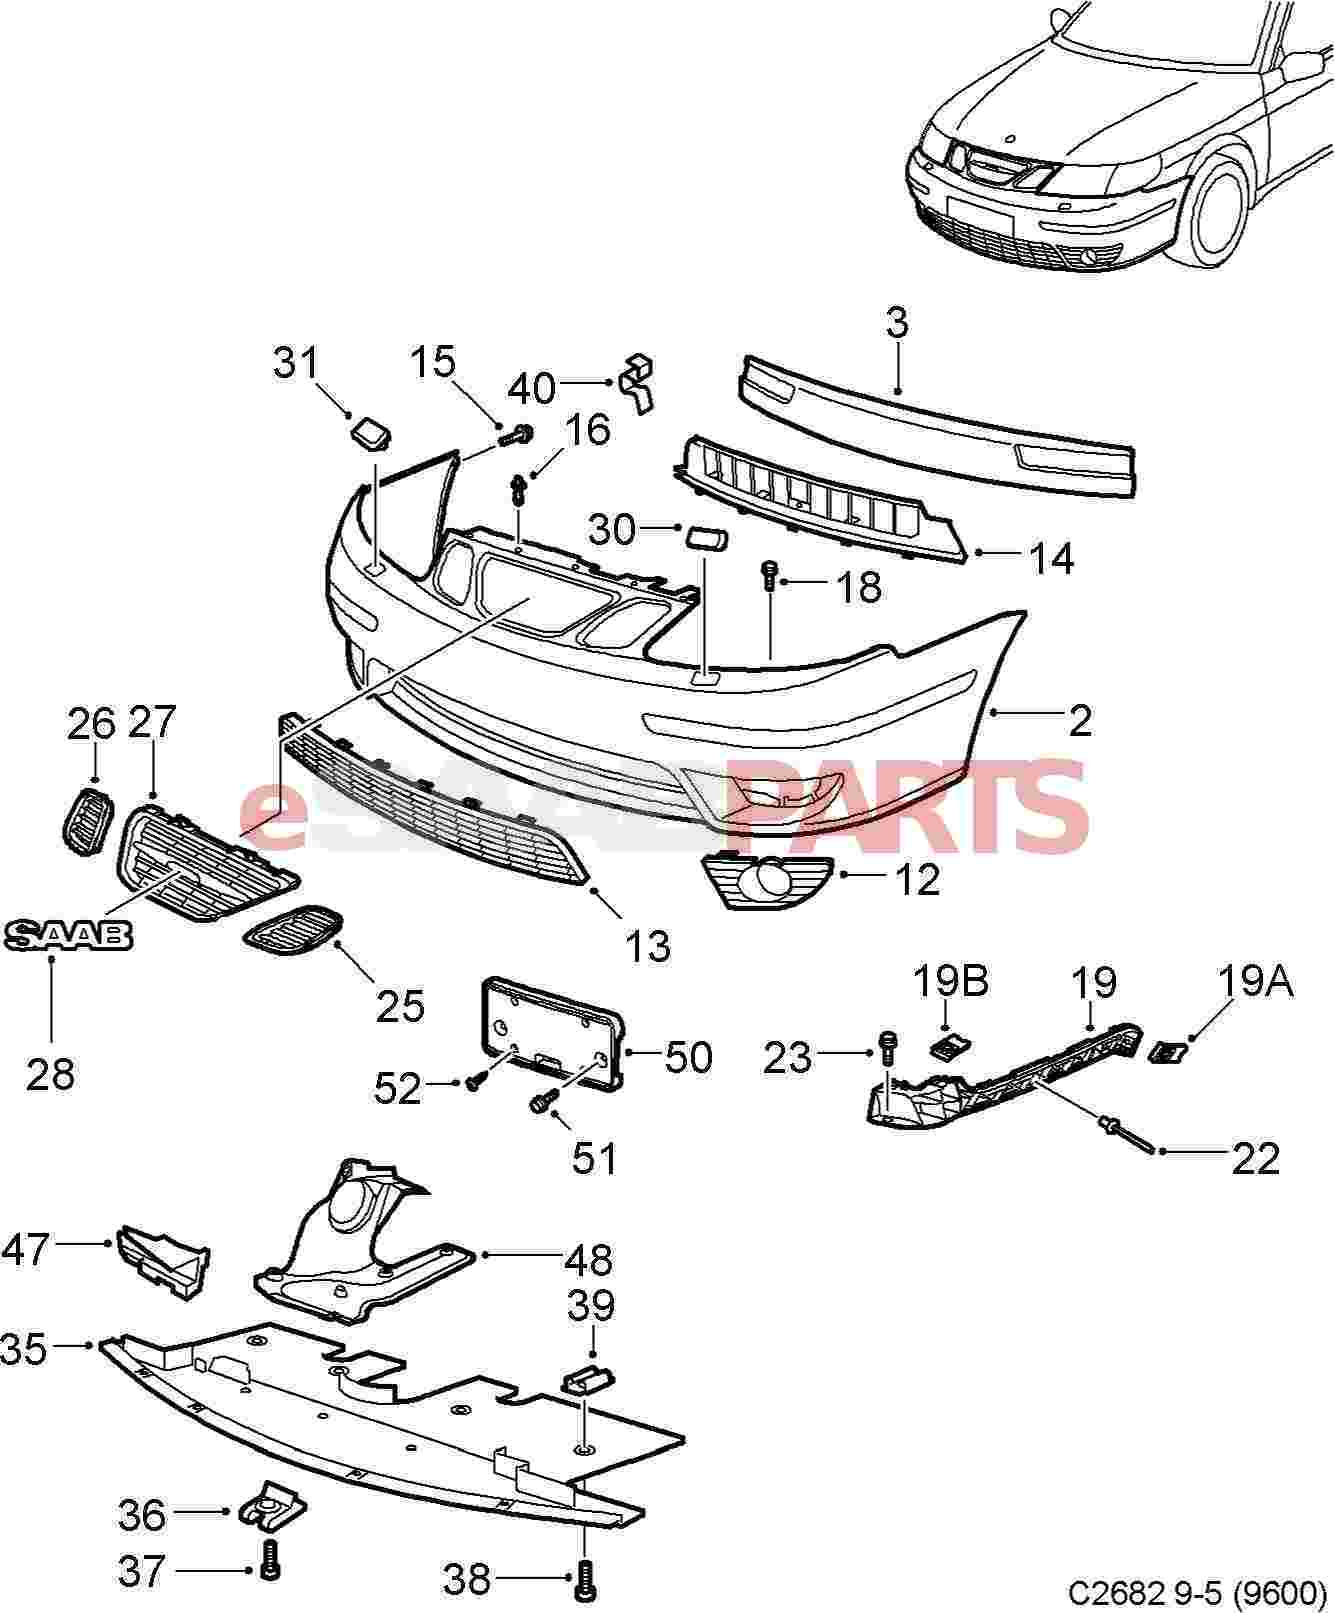 5289681 saab grille genuine saab parts from esaabparts diagram image 27 sciox Image collections